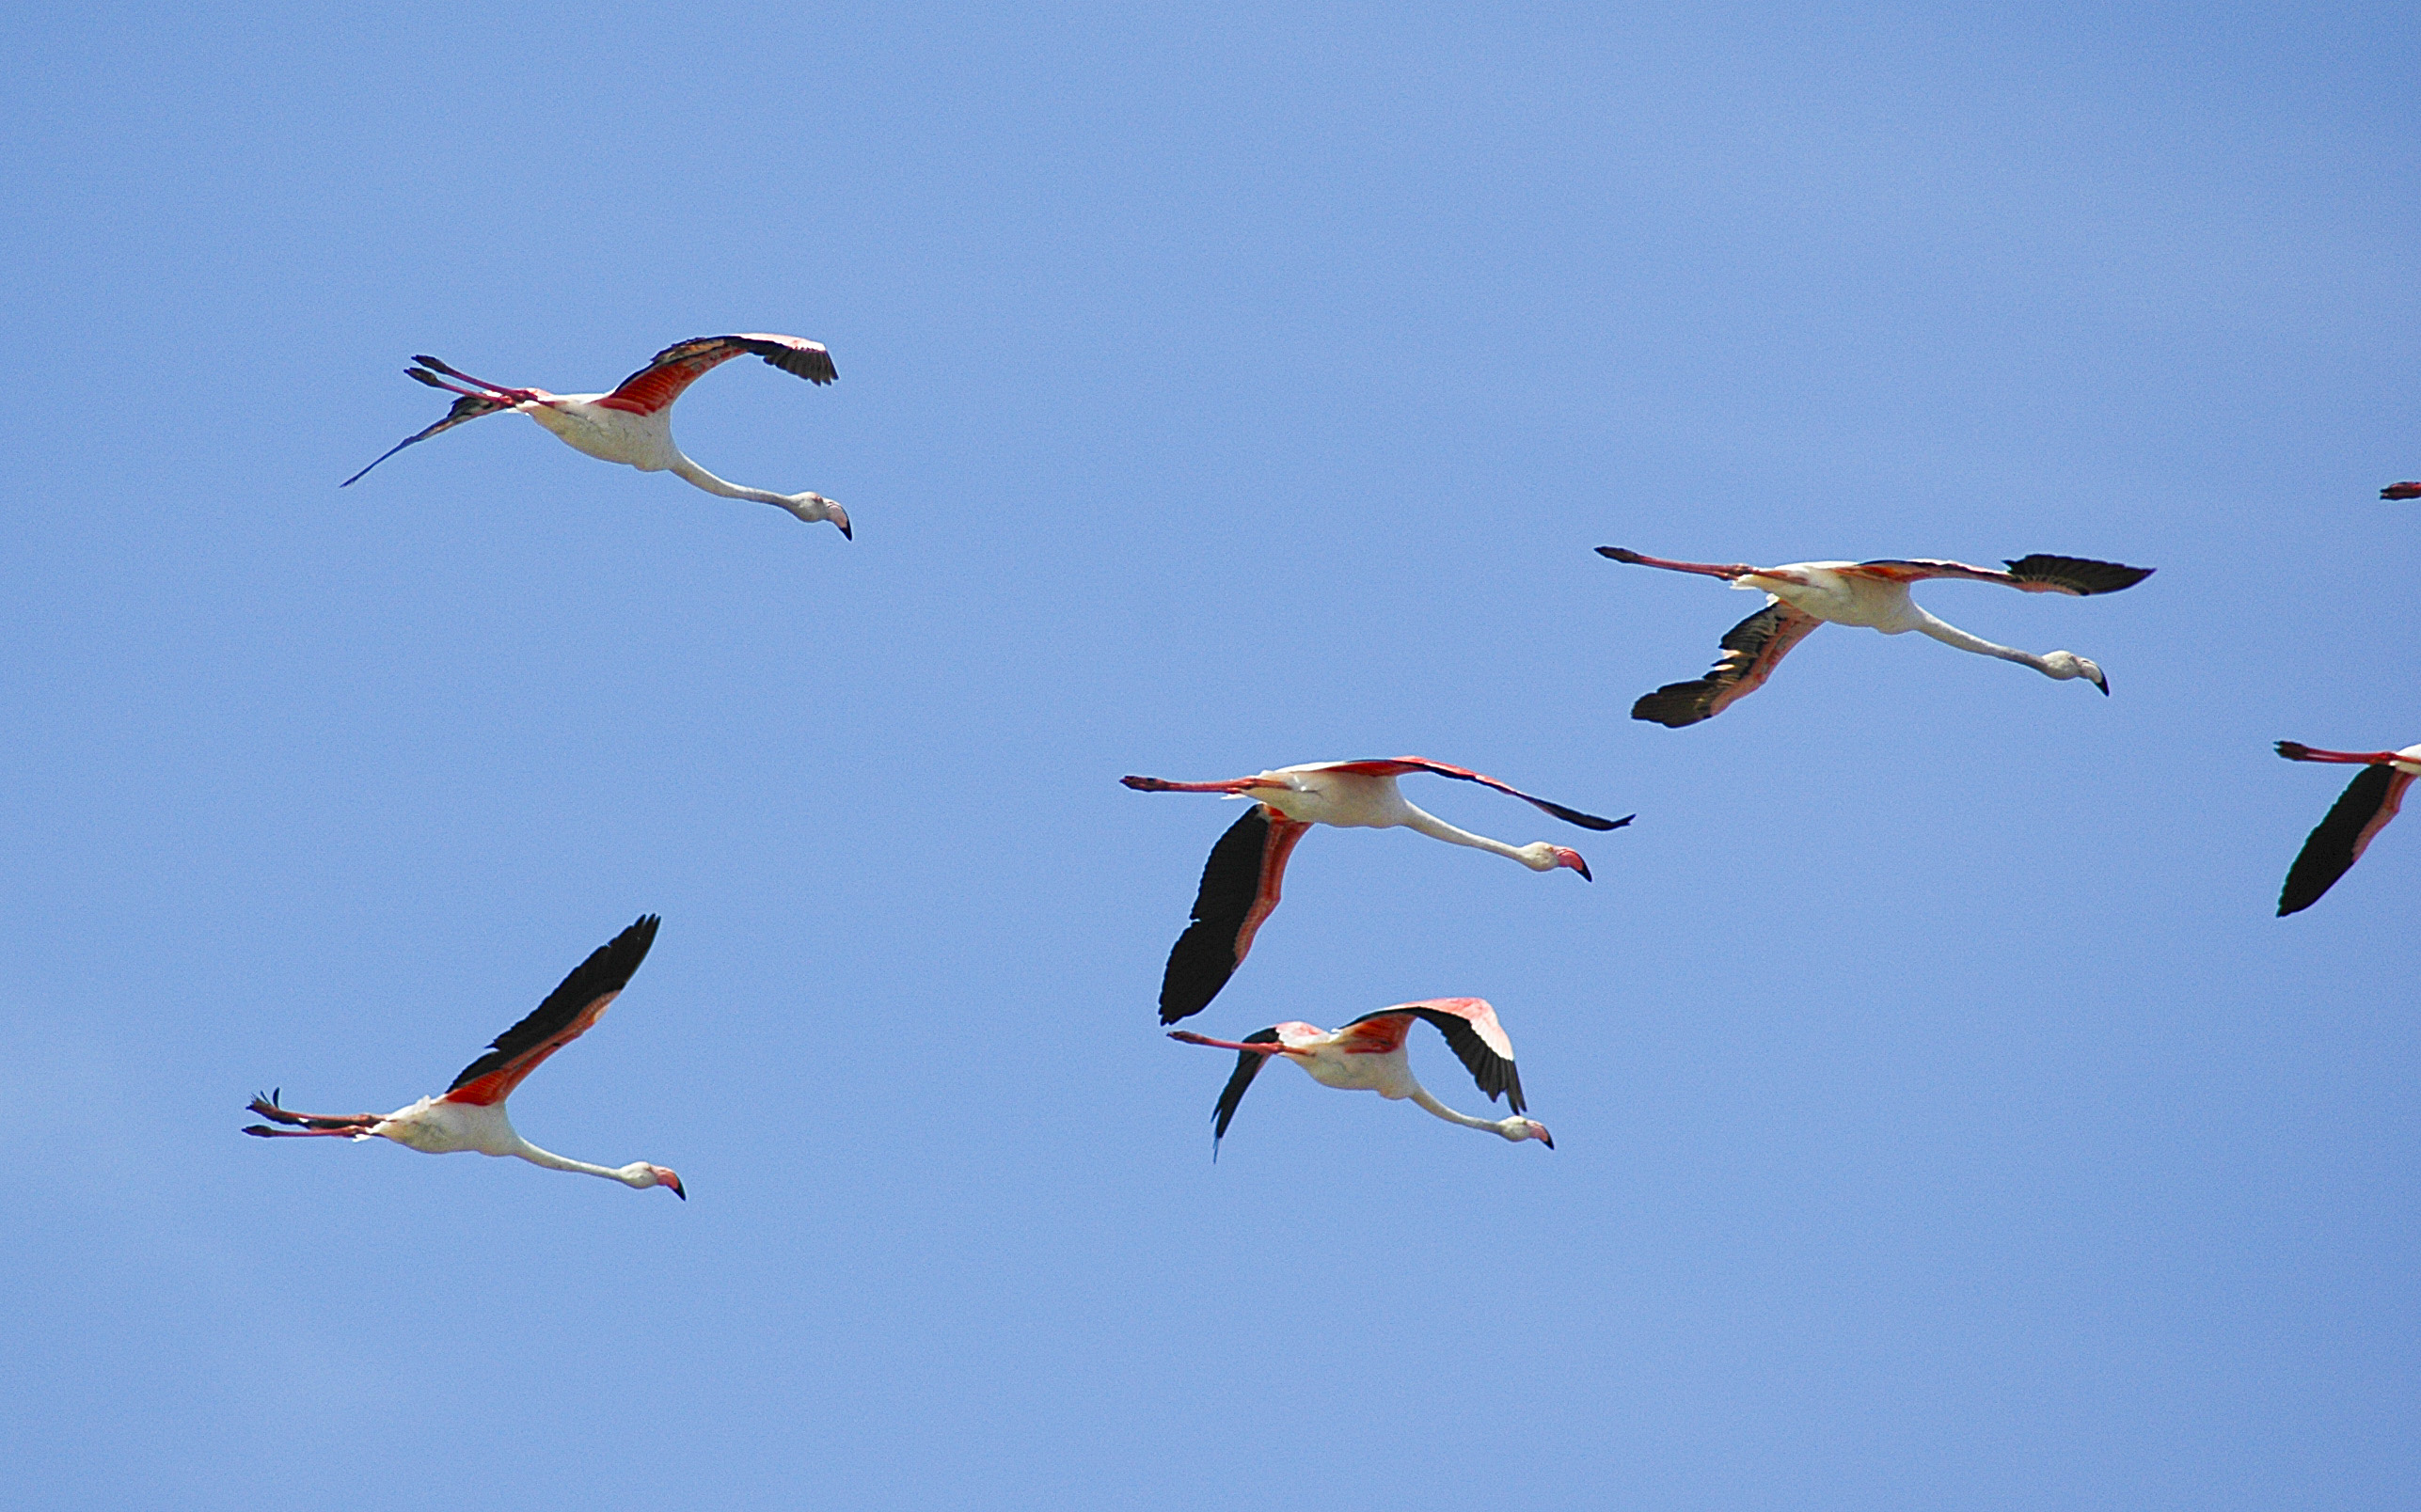 MAROC MOULAY-BOUSSELHAM Flamands roses